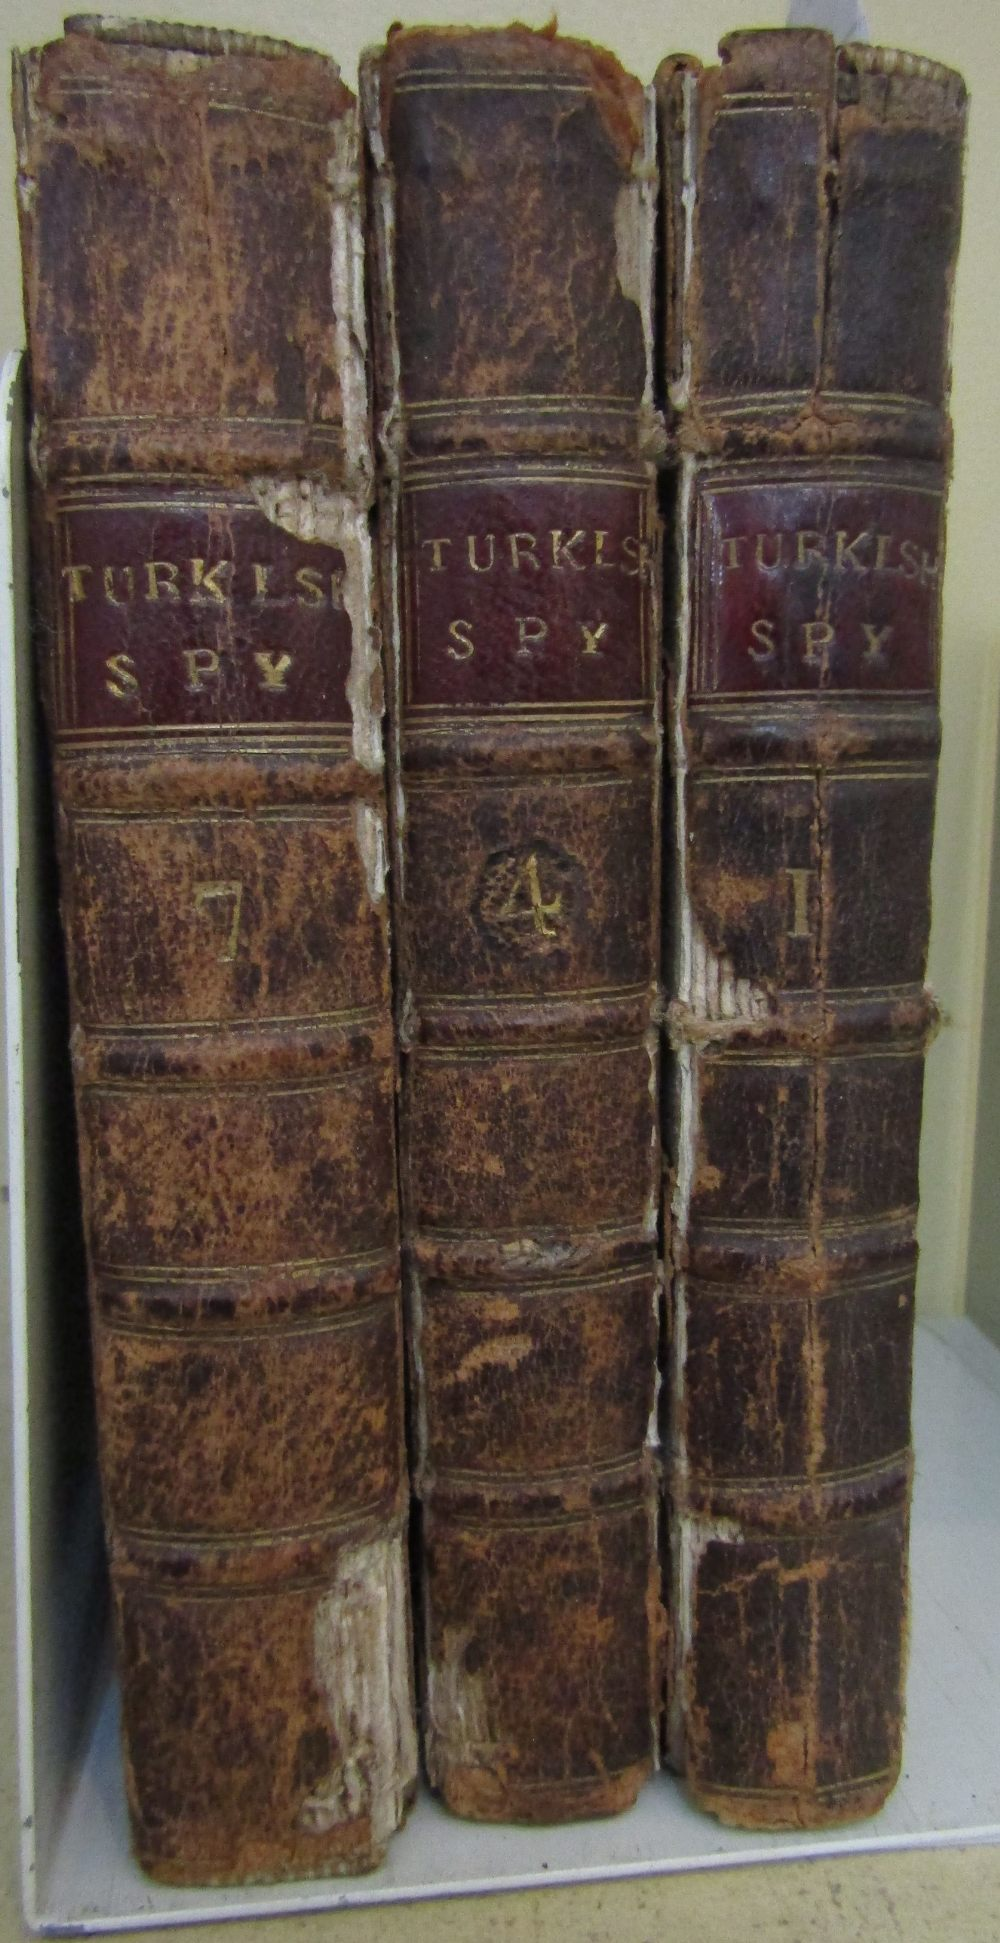 Lot 790 - Three small 17th century volumes of Letter Writ by a Turkish Spy, printed for Henry Rhodes, 1692-